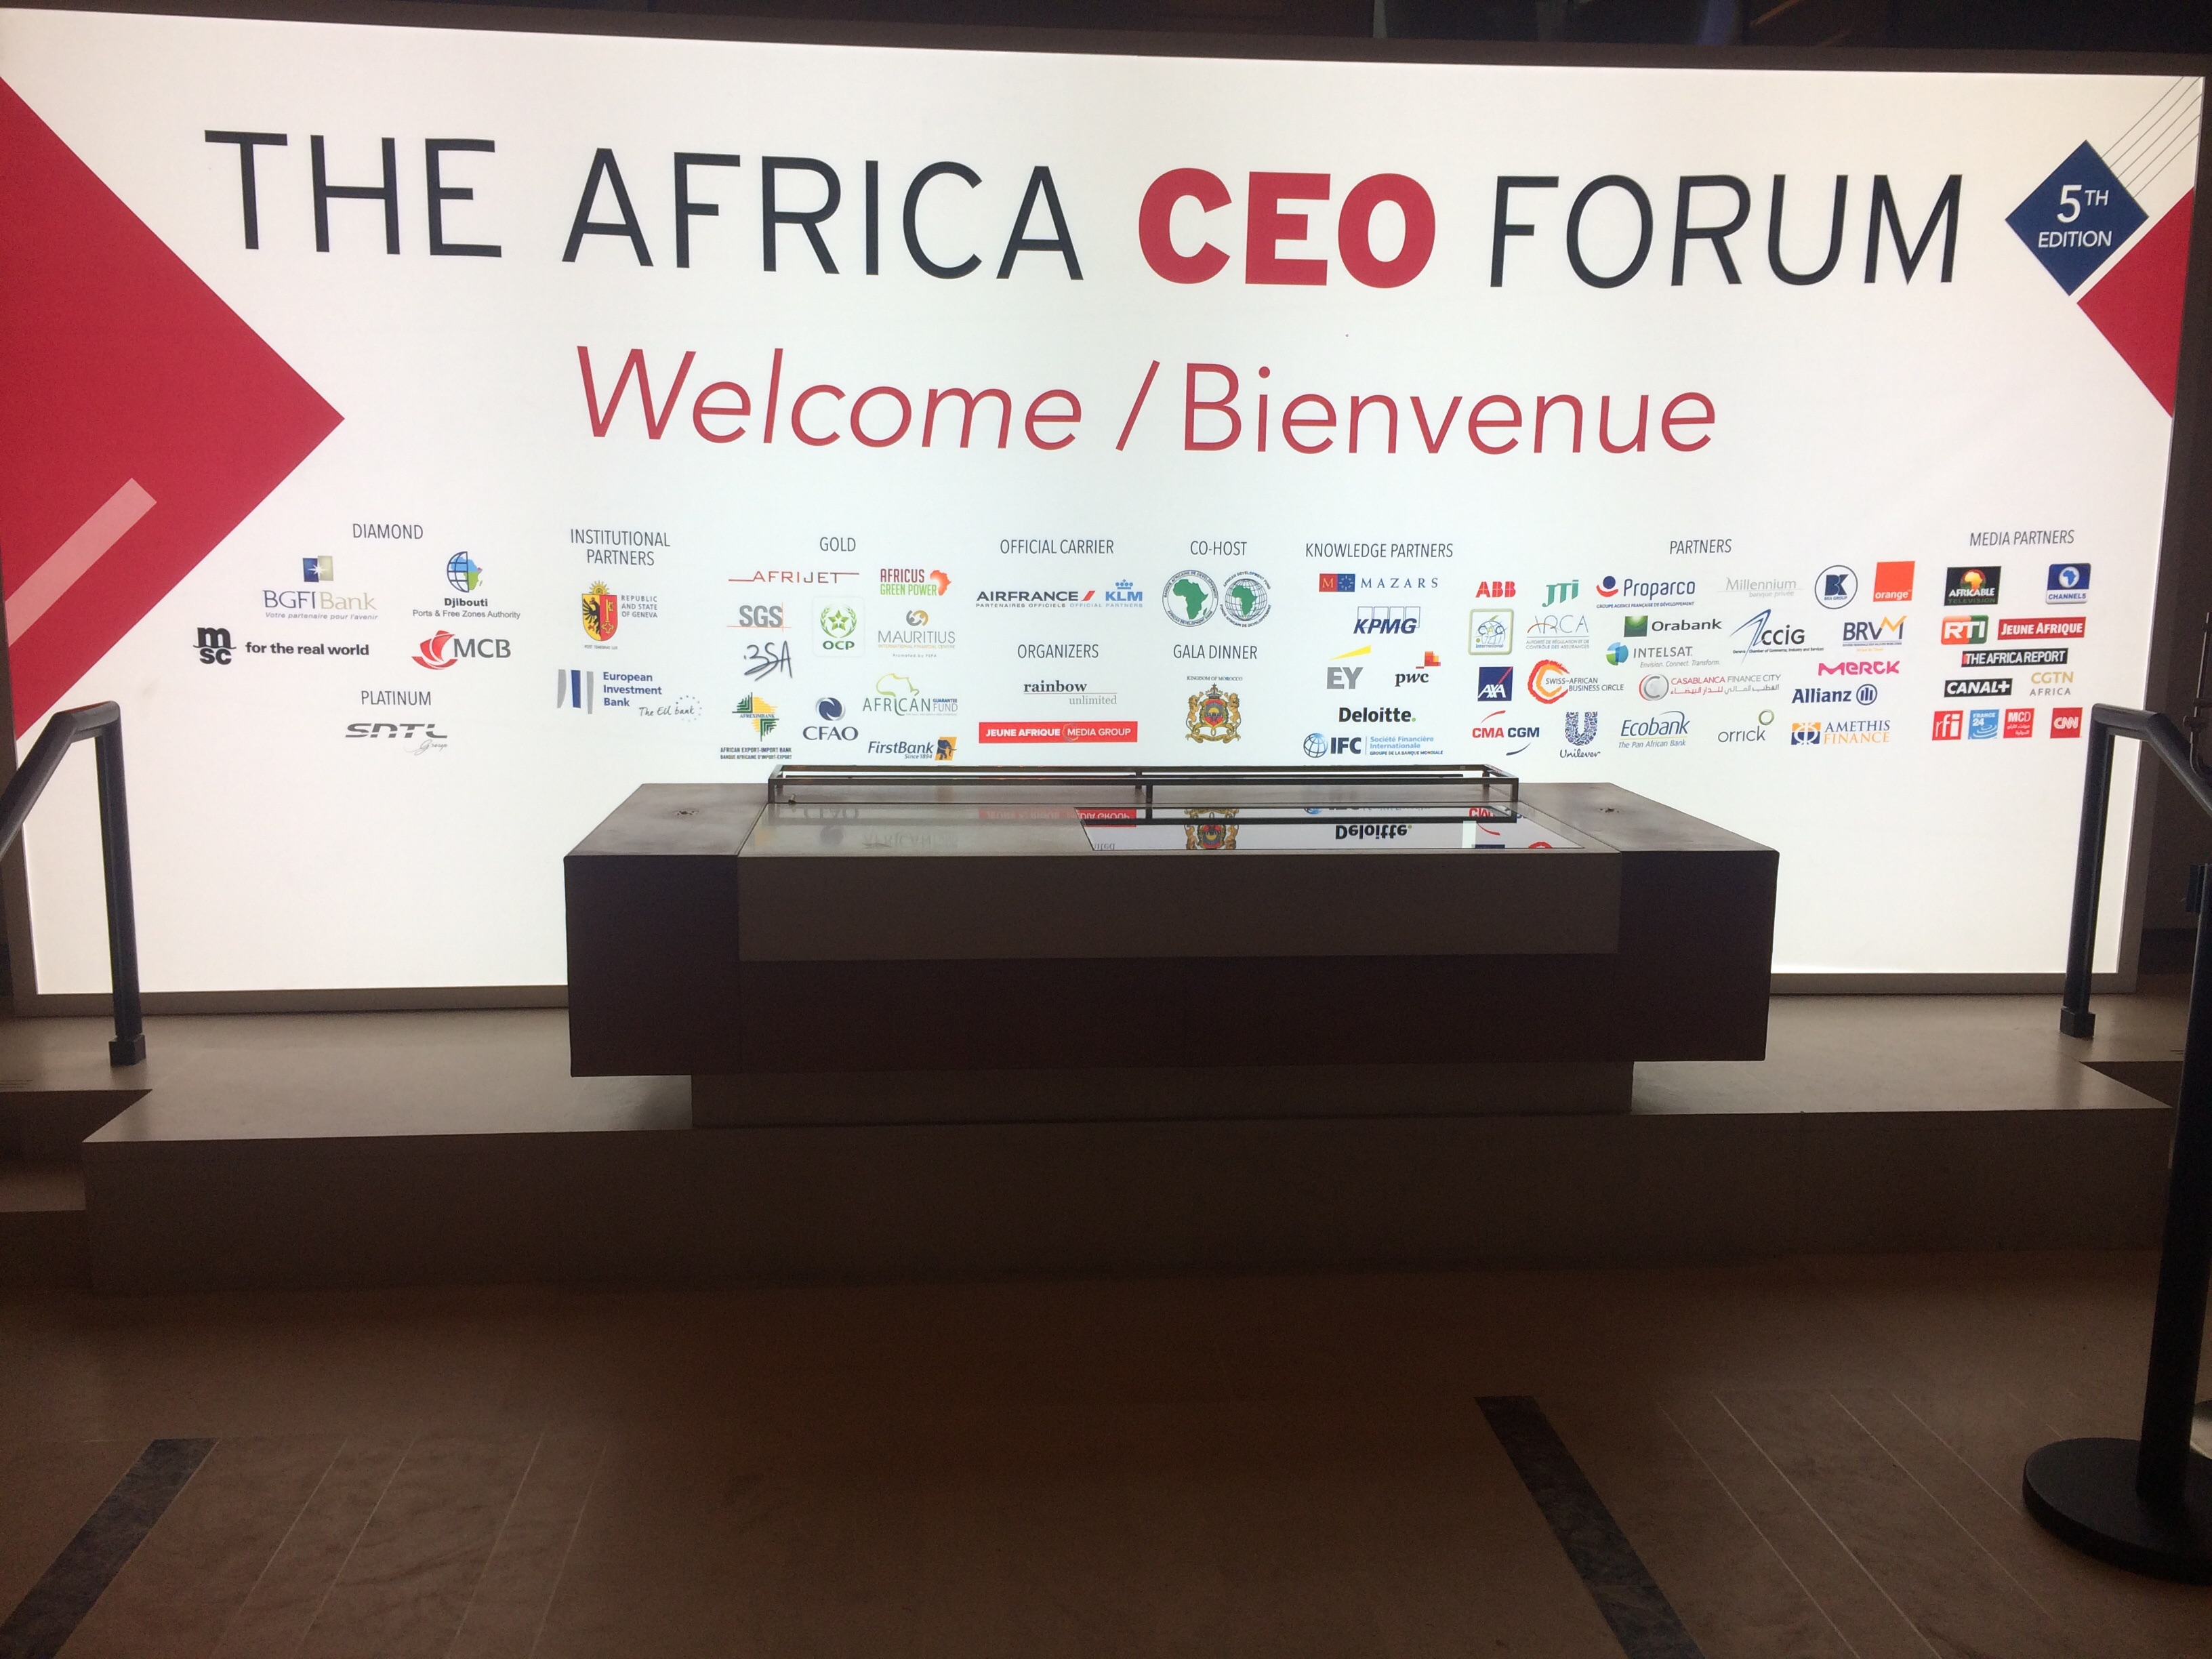 These are the 2017 Africa CEO Forum award winners